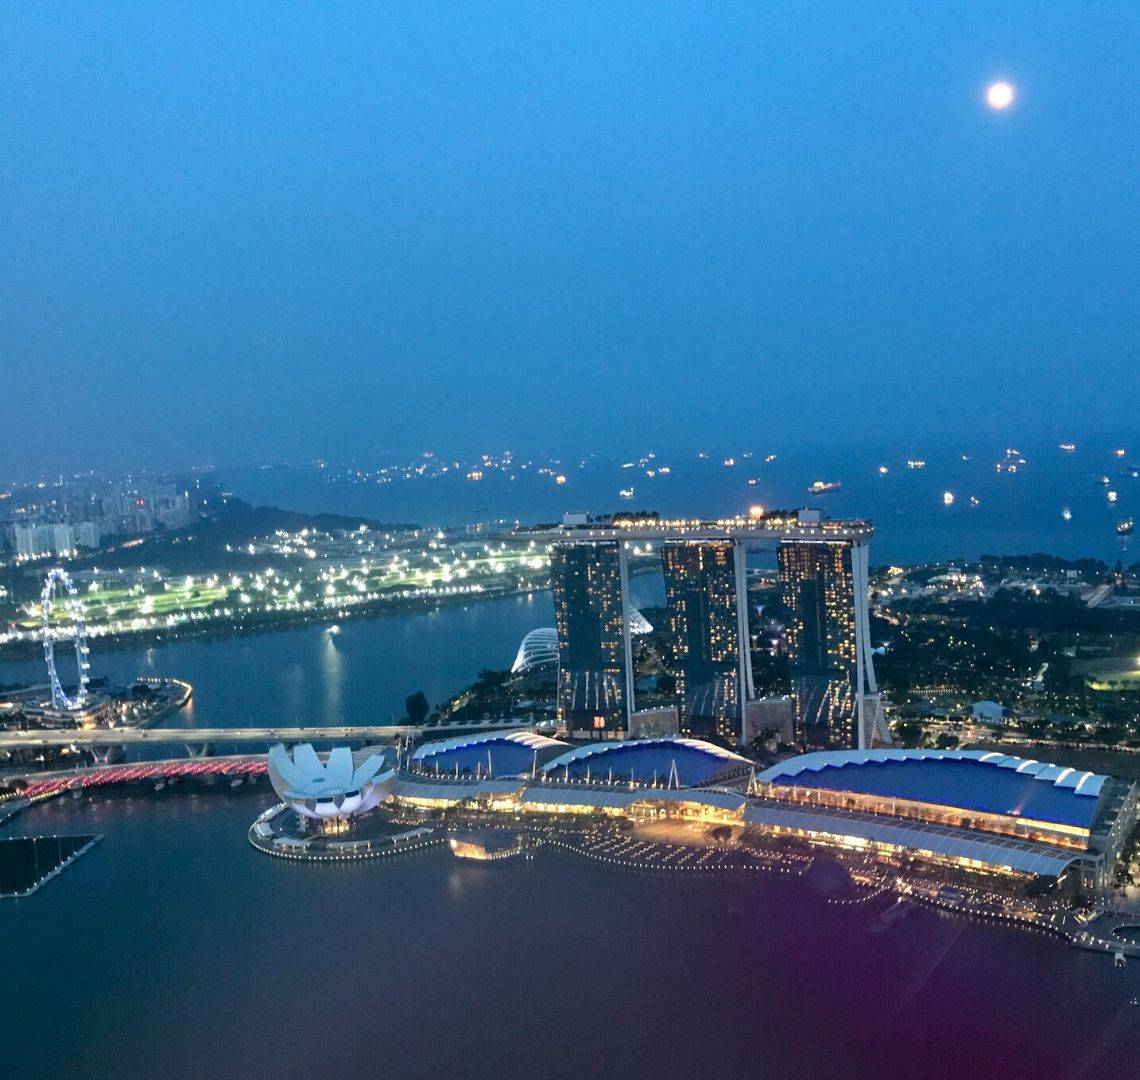 Things To Eat In Singapore With Kids - sky view of Marina Bay at night. The Singapore Flyer, Art Science Museum and Marina Bay sands are all clearly visible just past a small stretch of water. Behind the, is more water and the next piece of land which is brightly lit. In the sea behind you can see the lights from the container ships that are at anchor there. There is a bright full moon shining in the top right hadn't corner